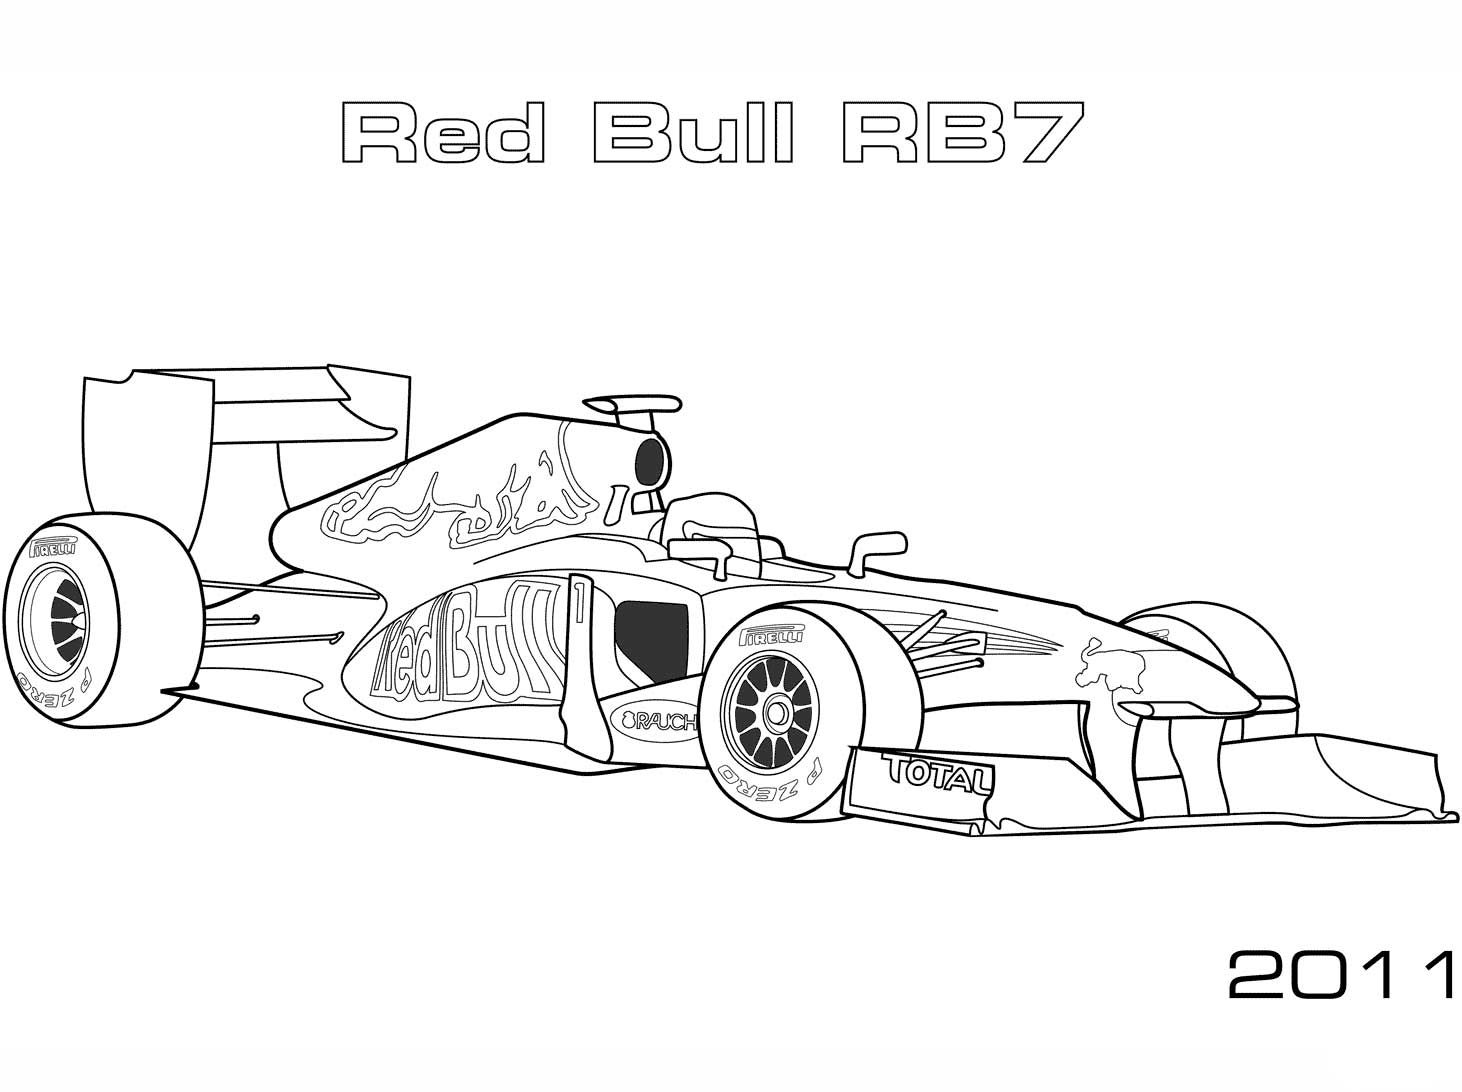 Red Bull Rb7 Formula 1 Car Coloring Page Cars Coloring Pages Coloring Pages Cute Coloring Pages